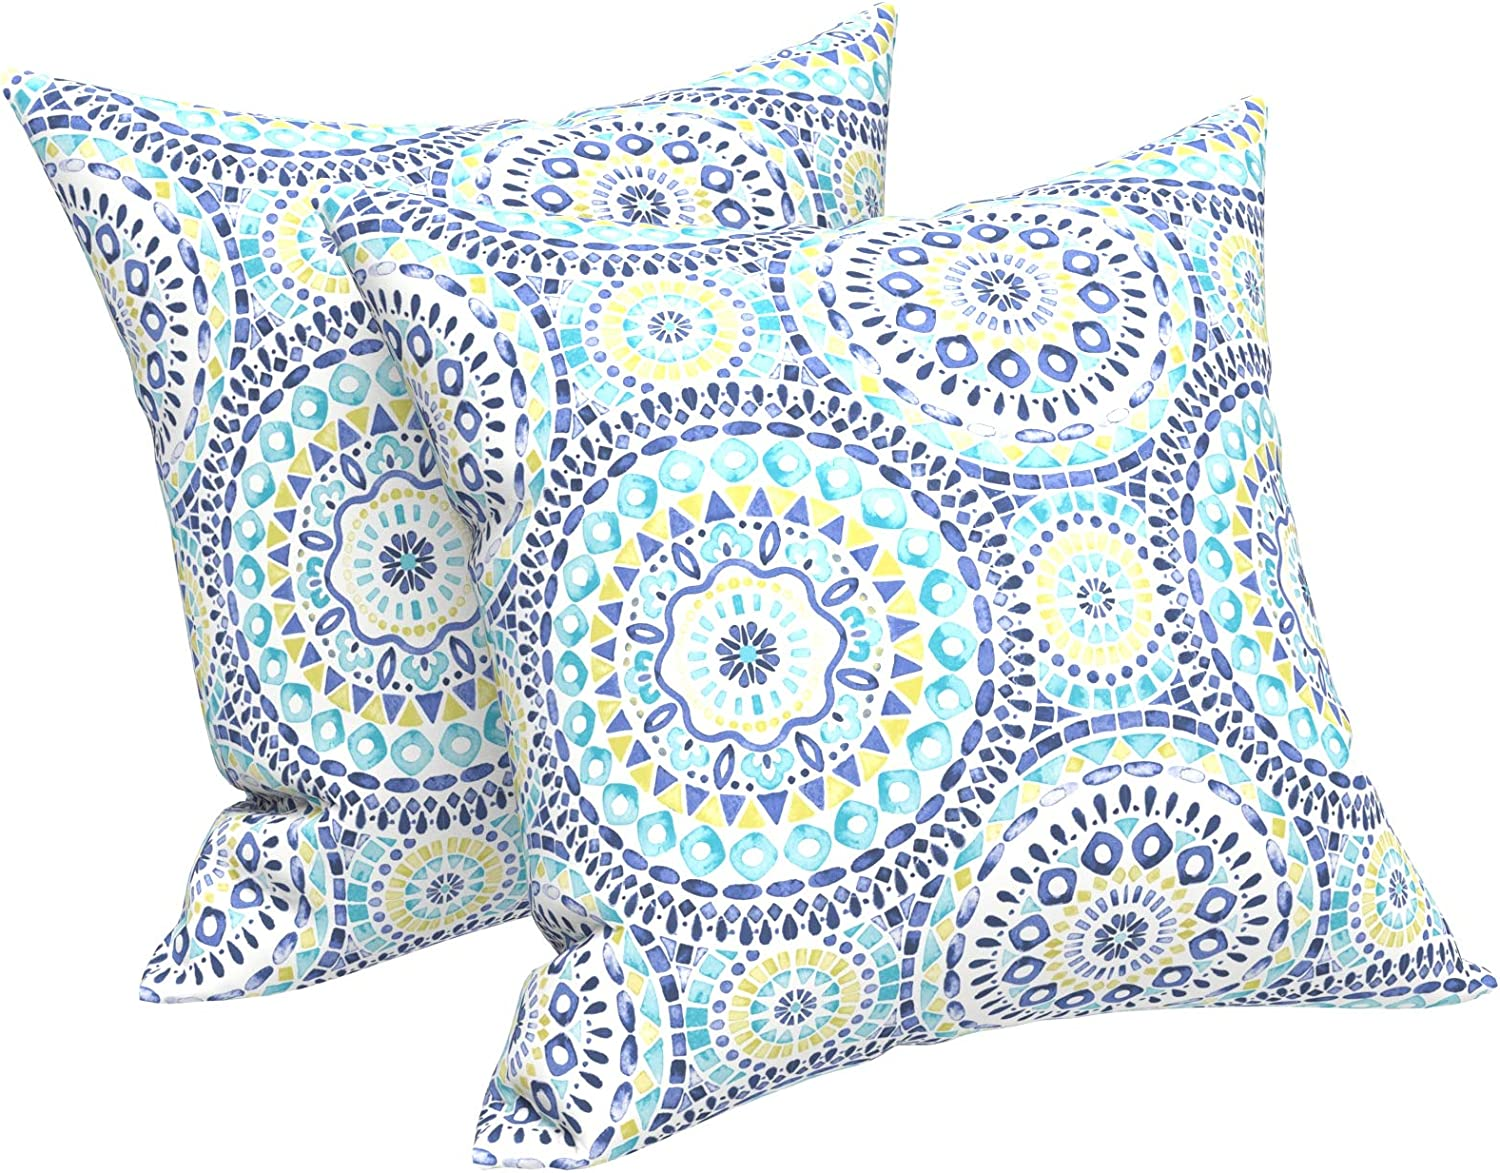 Lvtxiii Outdoor Throw Pillow Covers 18 X 18 Inch Modern Paisley Pattern Decorative Square Toss Pillow Case Pack Of 2 For Home Patio Garden Sofa Bed Furniture Delancey Lagoon Home Kitchen